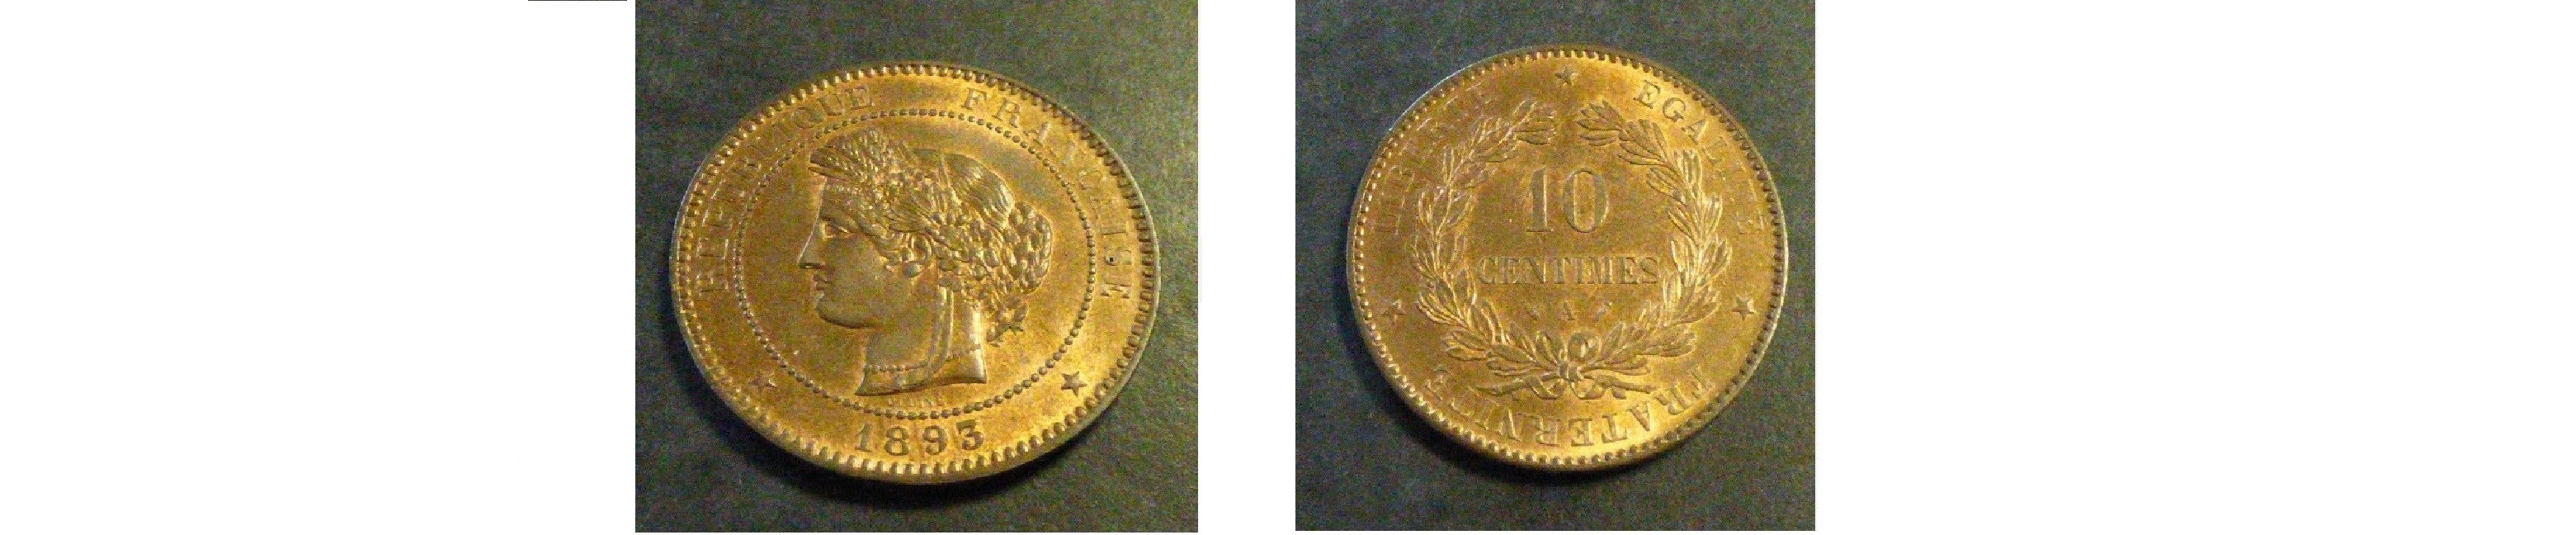 France 10 centimes 1893 Bronze 10g (SUP+/XF+/VZ+)